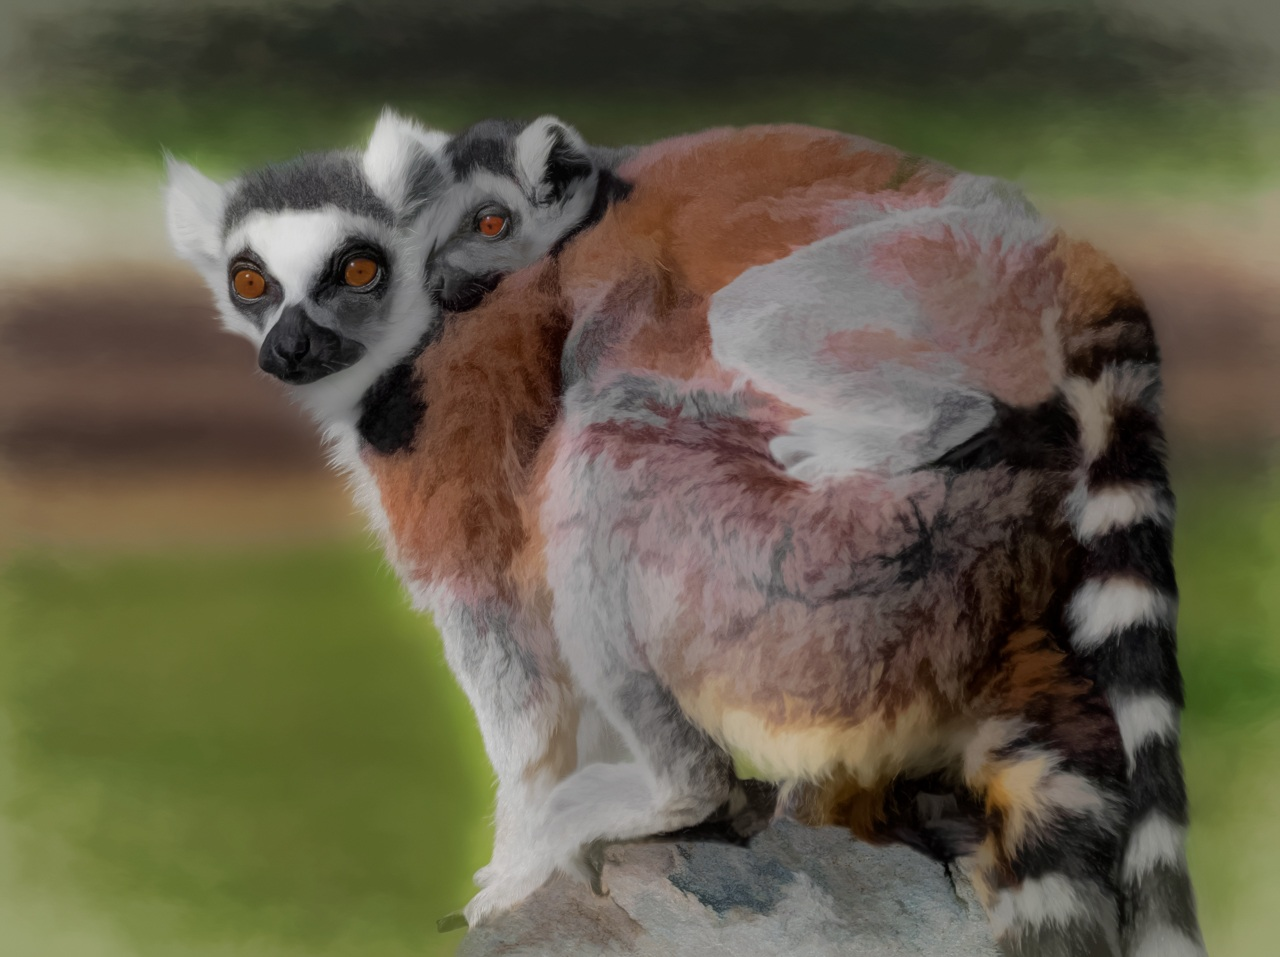 Lemur Mother and Baby - Marianne Diericks - WWPC